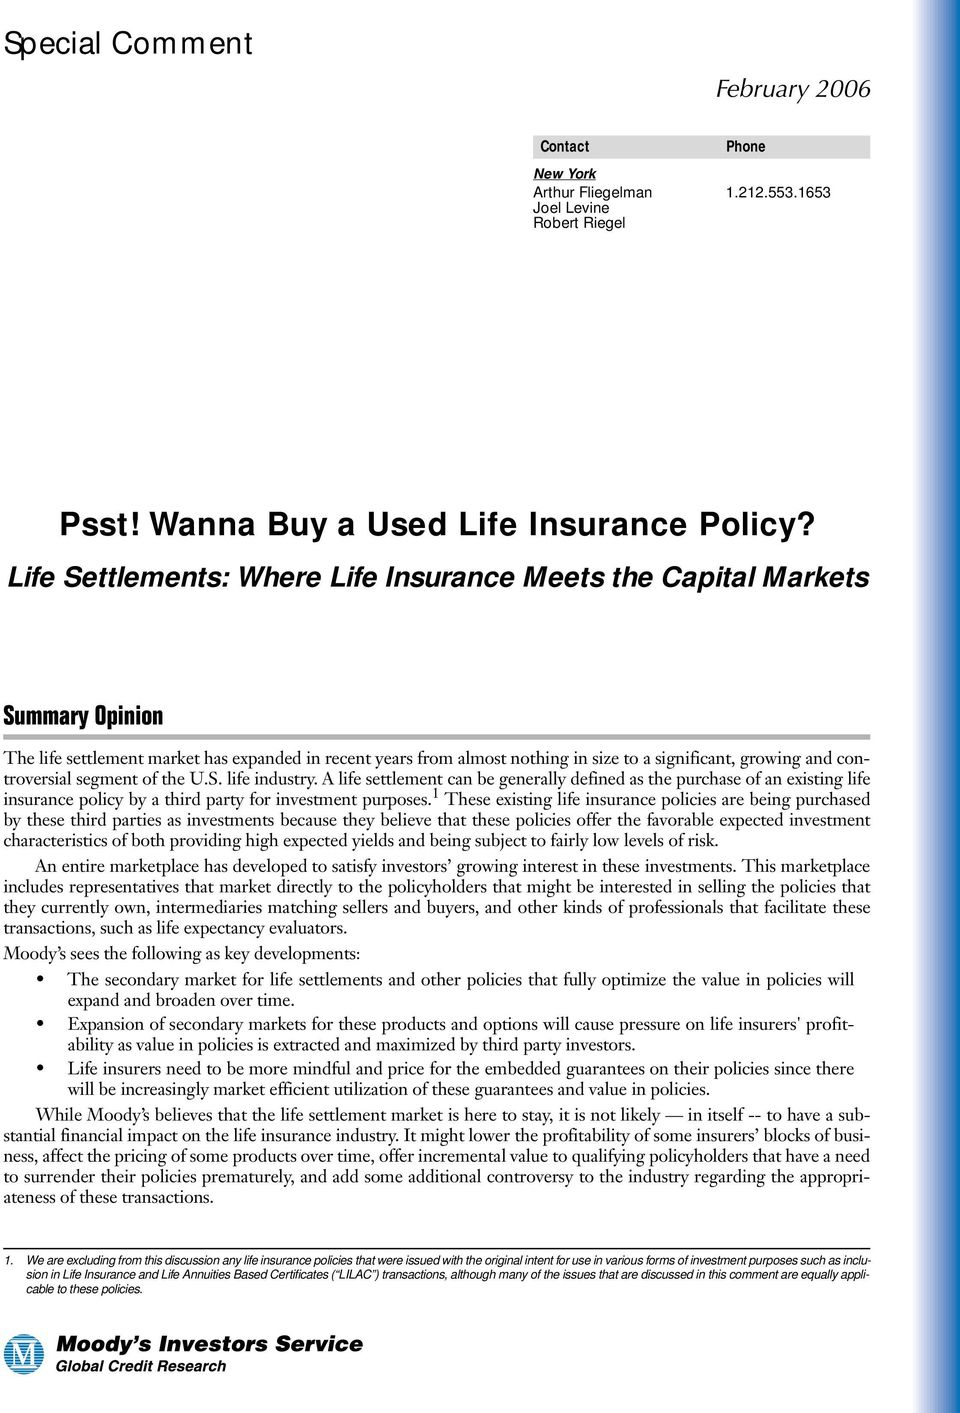 controversial segment of the U.S. life industry. A life settlement can be generally defined as the purchase of an existing life insurance policy by a third party for investment purposes.